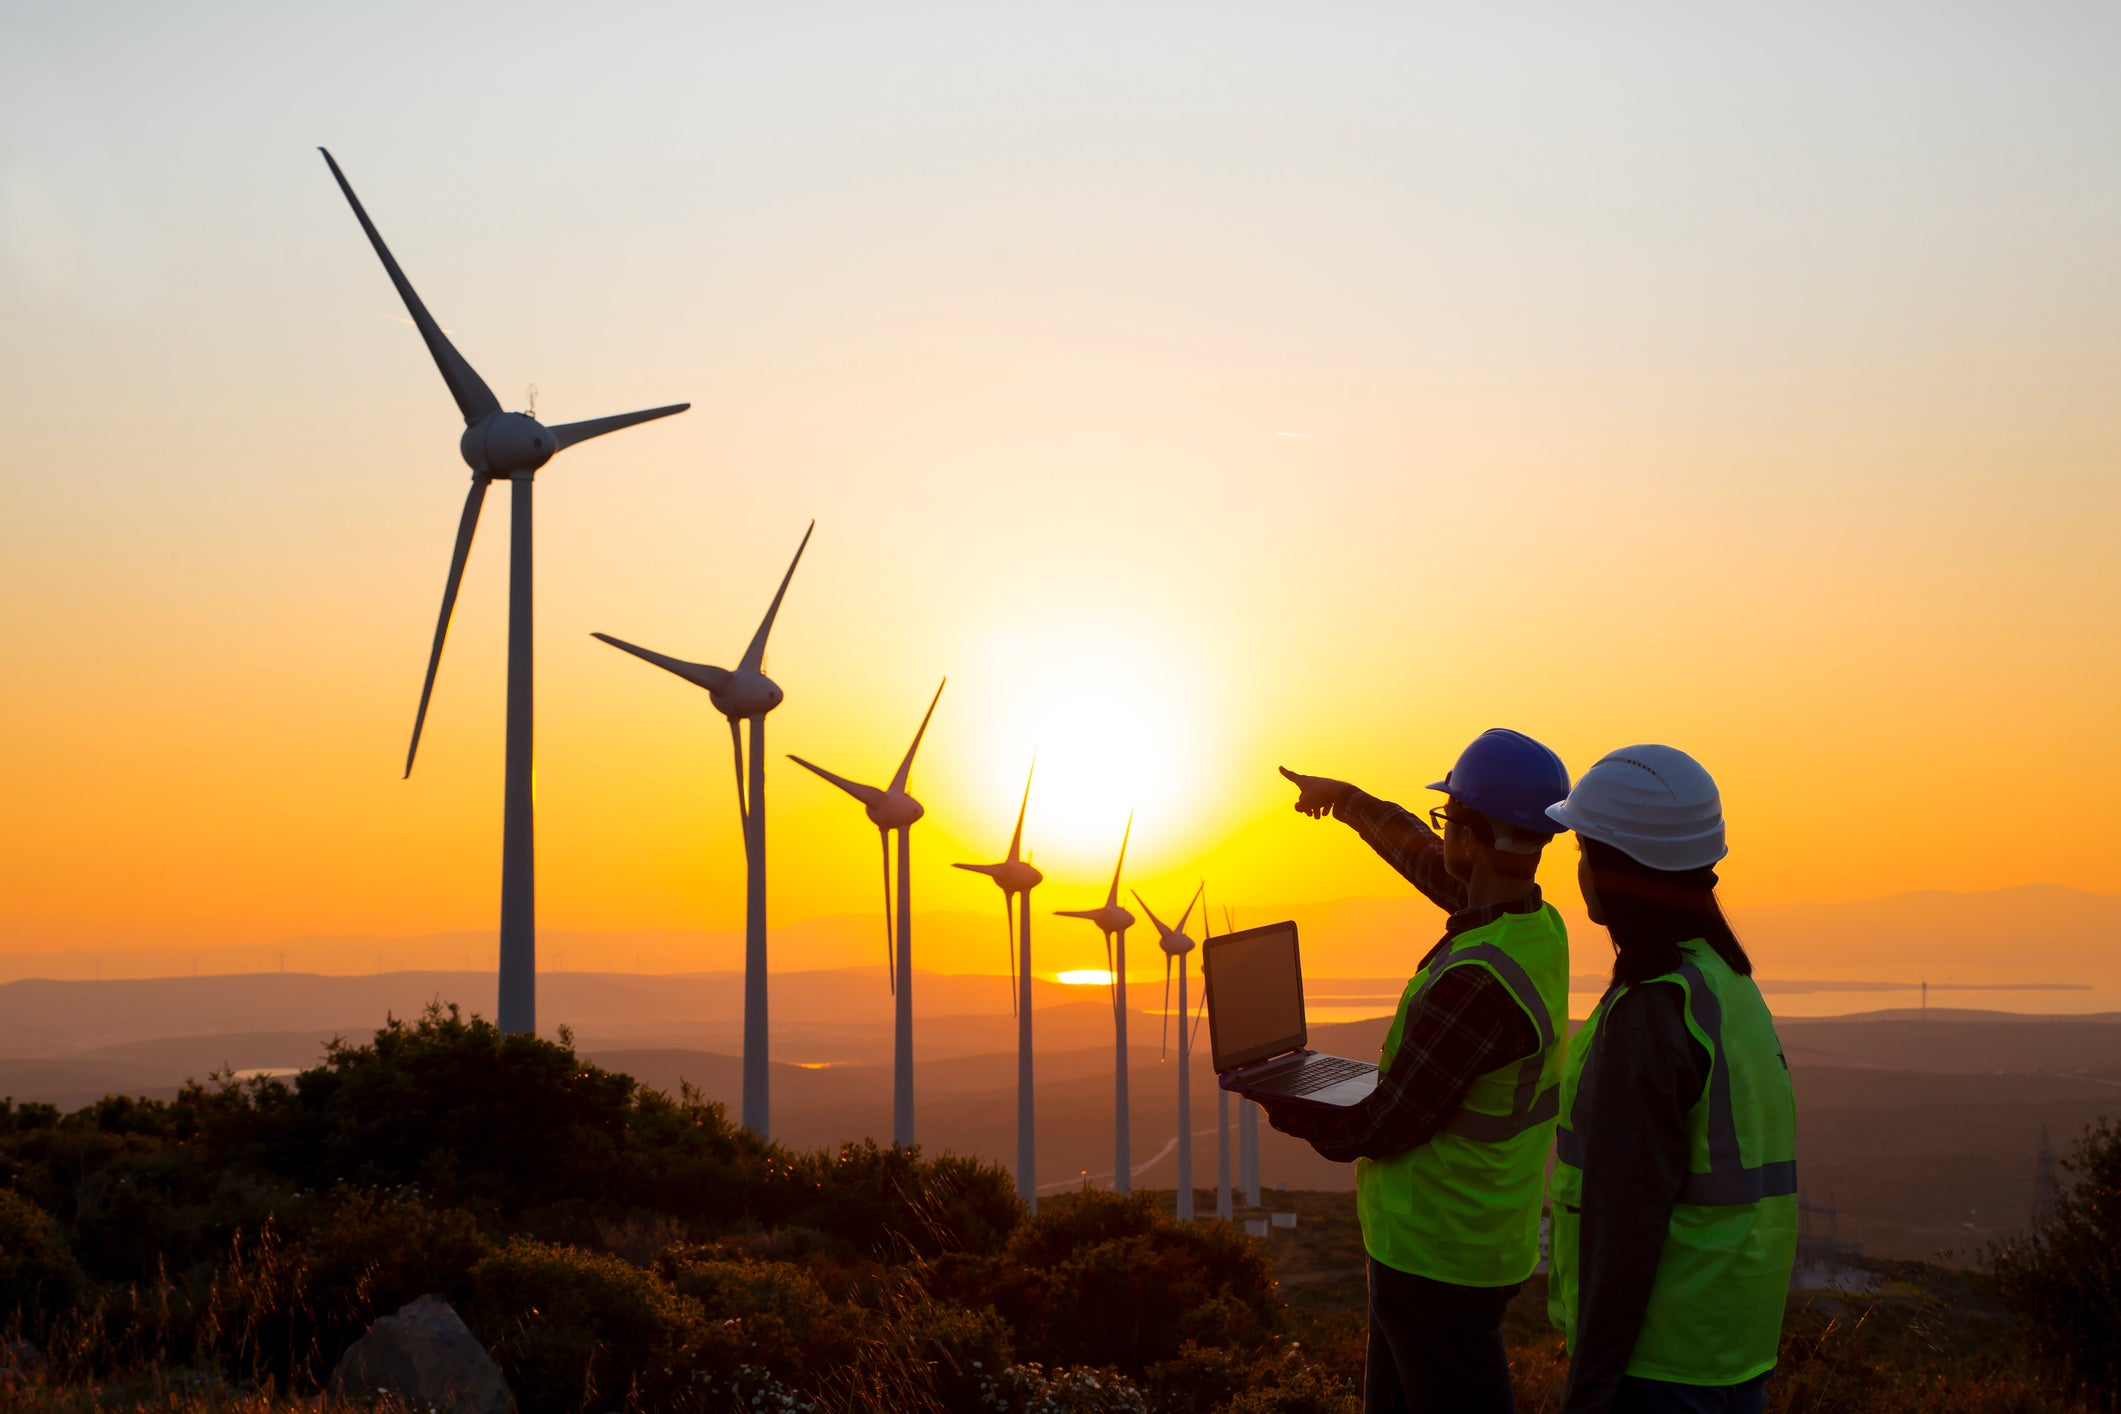 4 Leading Renewable Energy Stocks to Buy in 2021 and Beyond